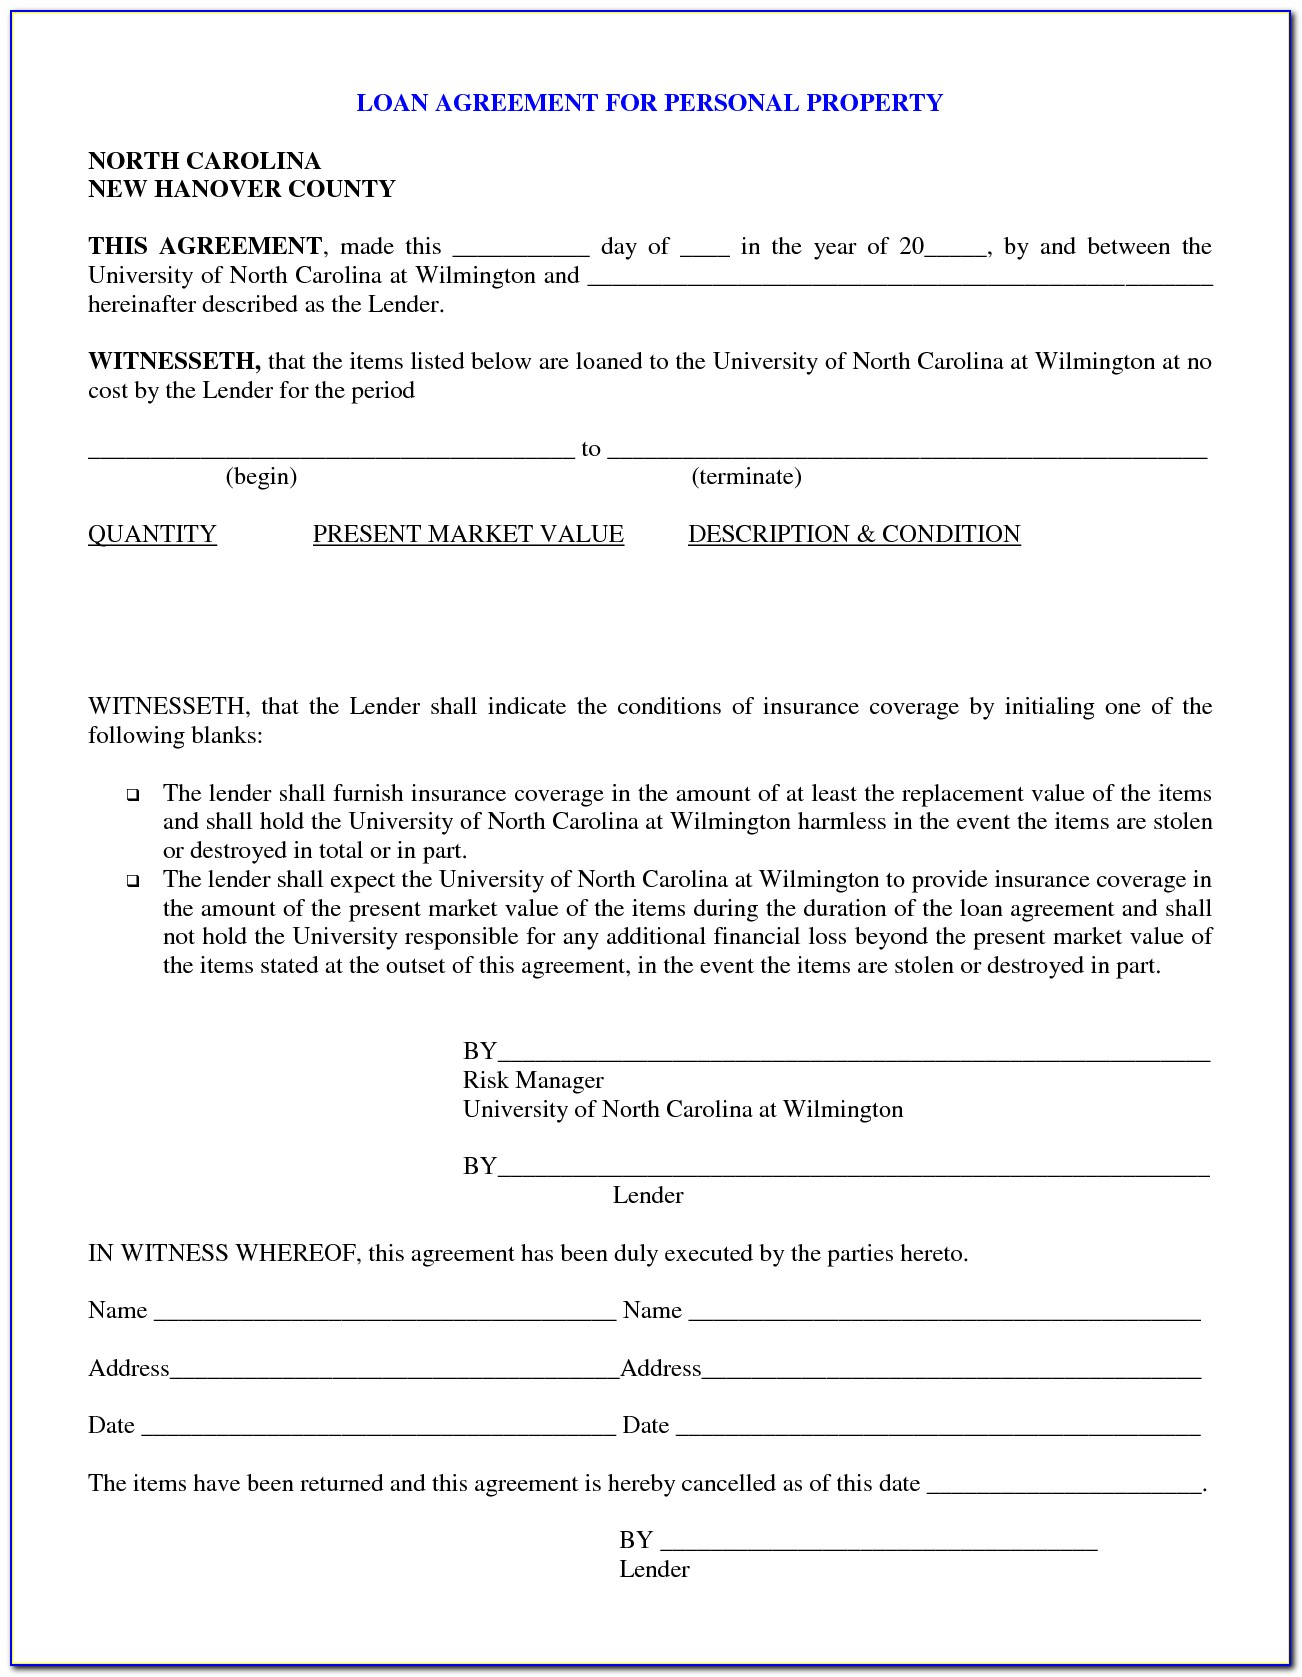 Sample Loan Agreement Form Download